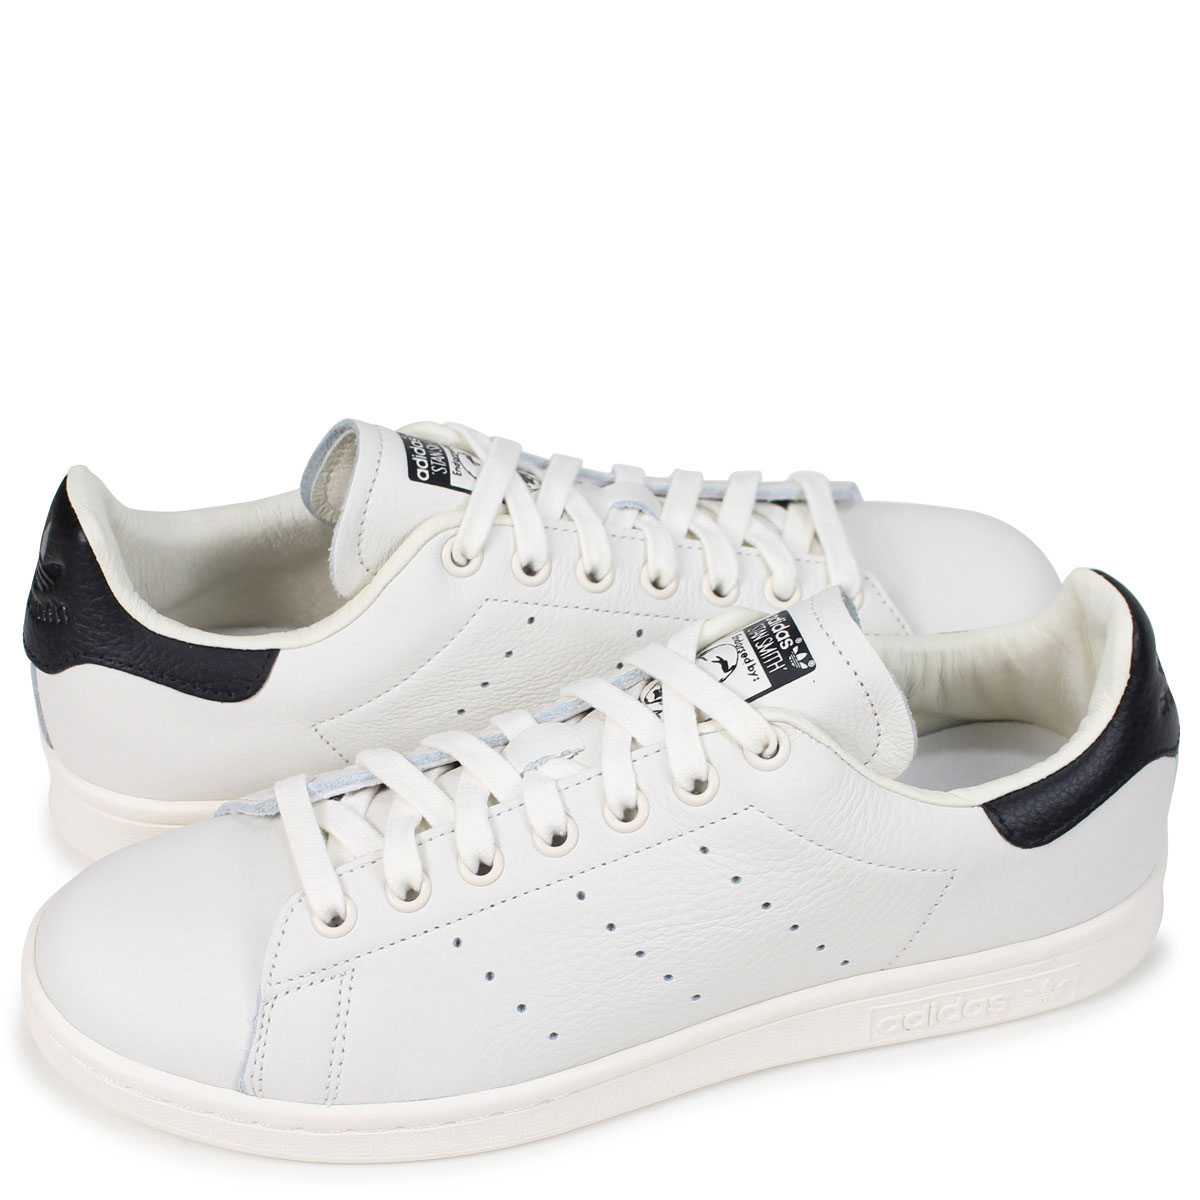 adidas Originals STAN SMITH Adidas originals Stan Smith sneakers men gap Dis B37897 white [load planned Shinnyu load in reservation product 620